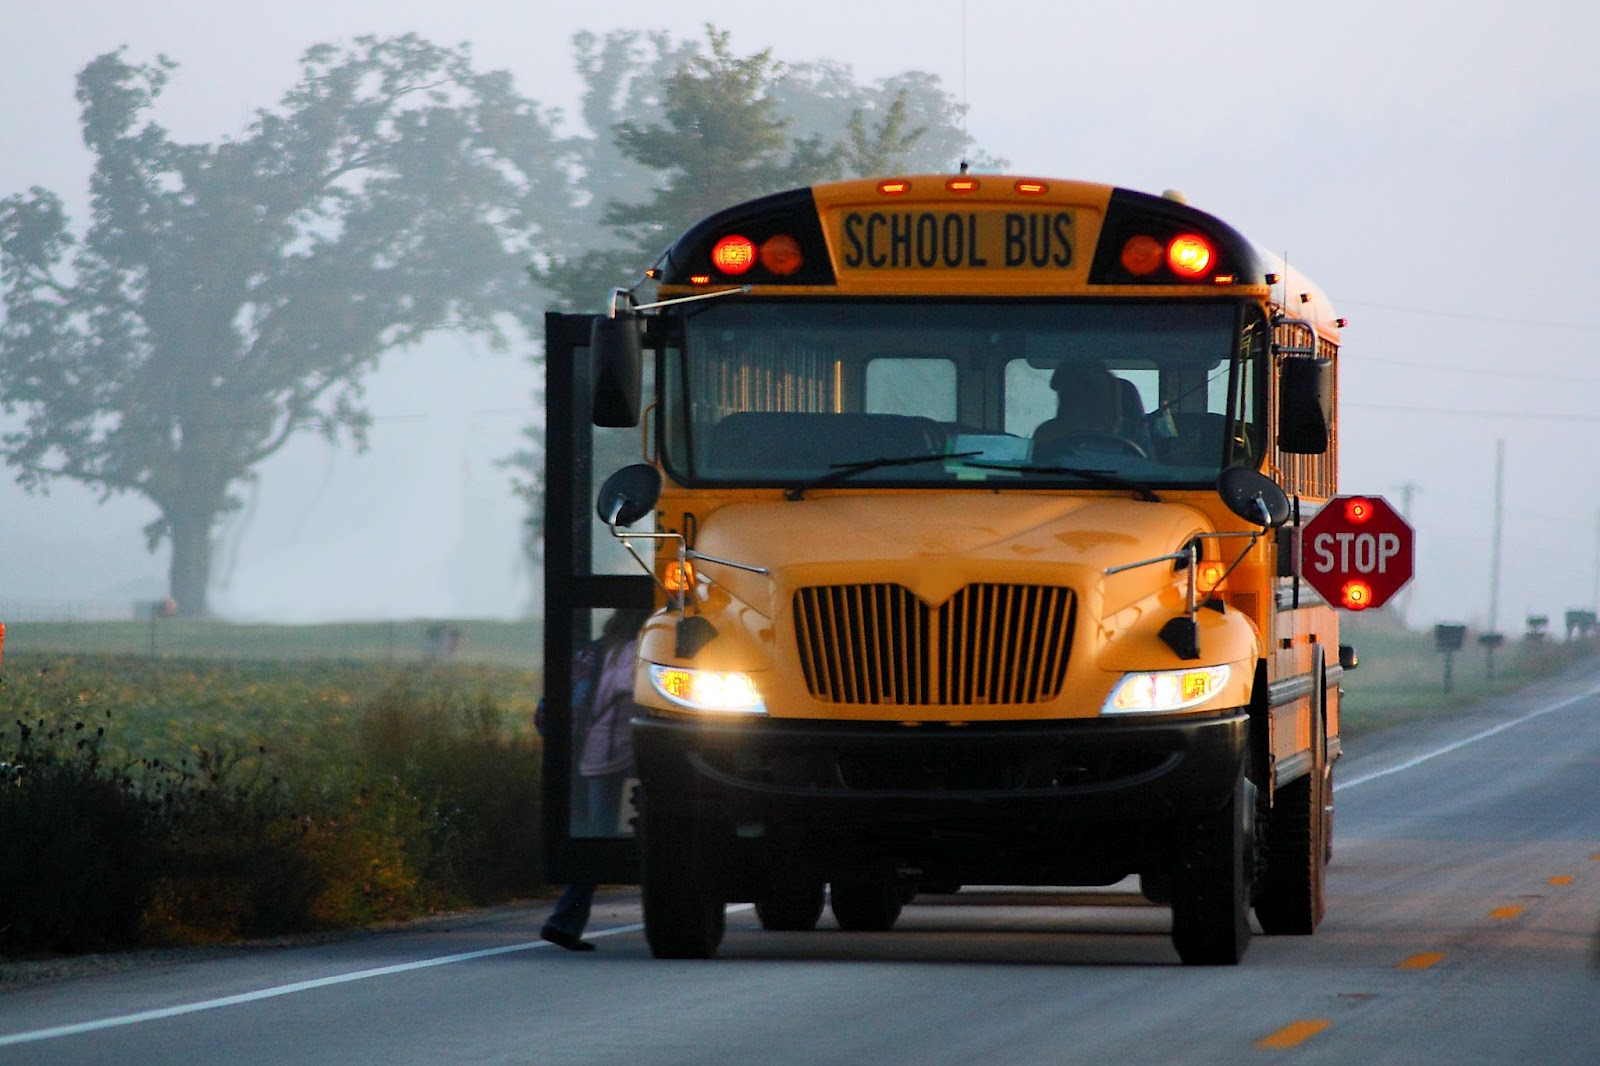 Wallpapers and pictures School bus in the morning hd wallpaper 1600x1066